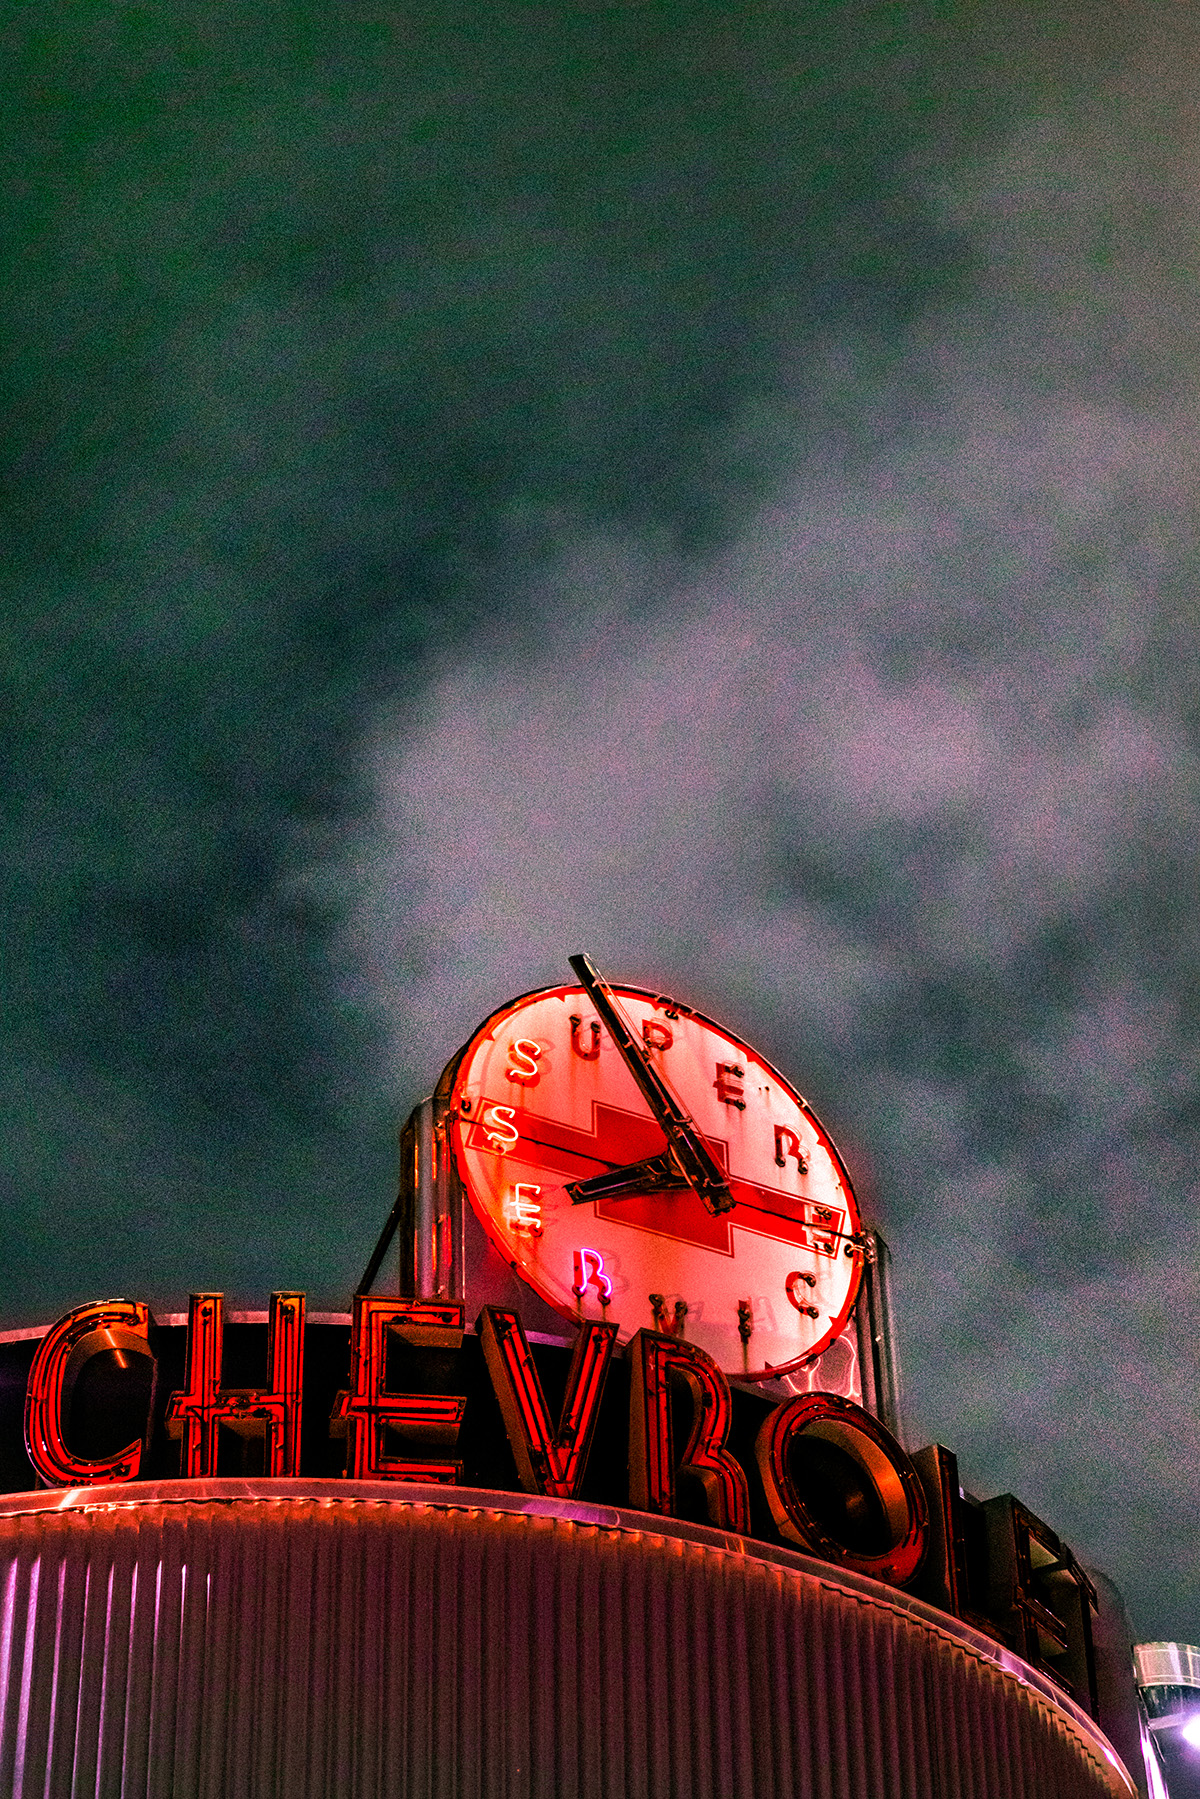 A photo of the top of a building with a clock, beneath a dark, night sky.